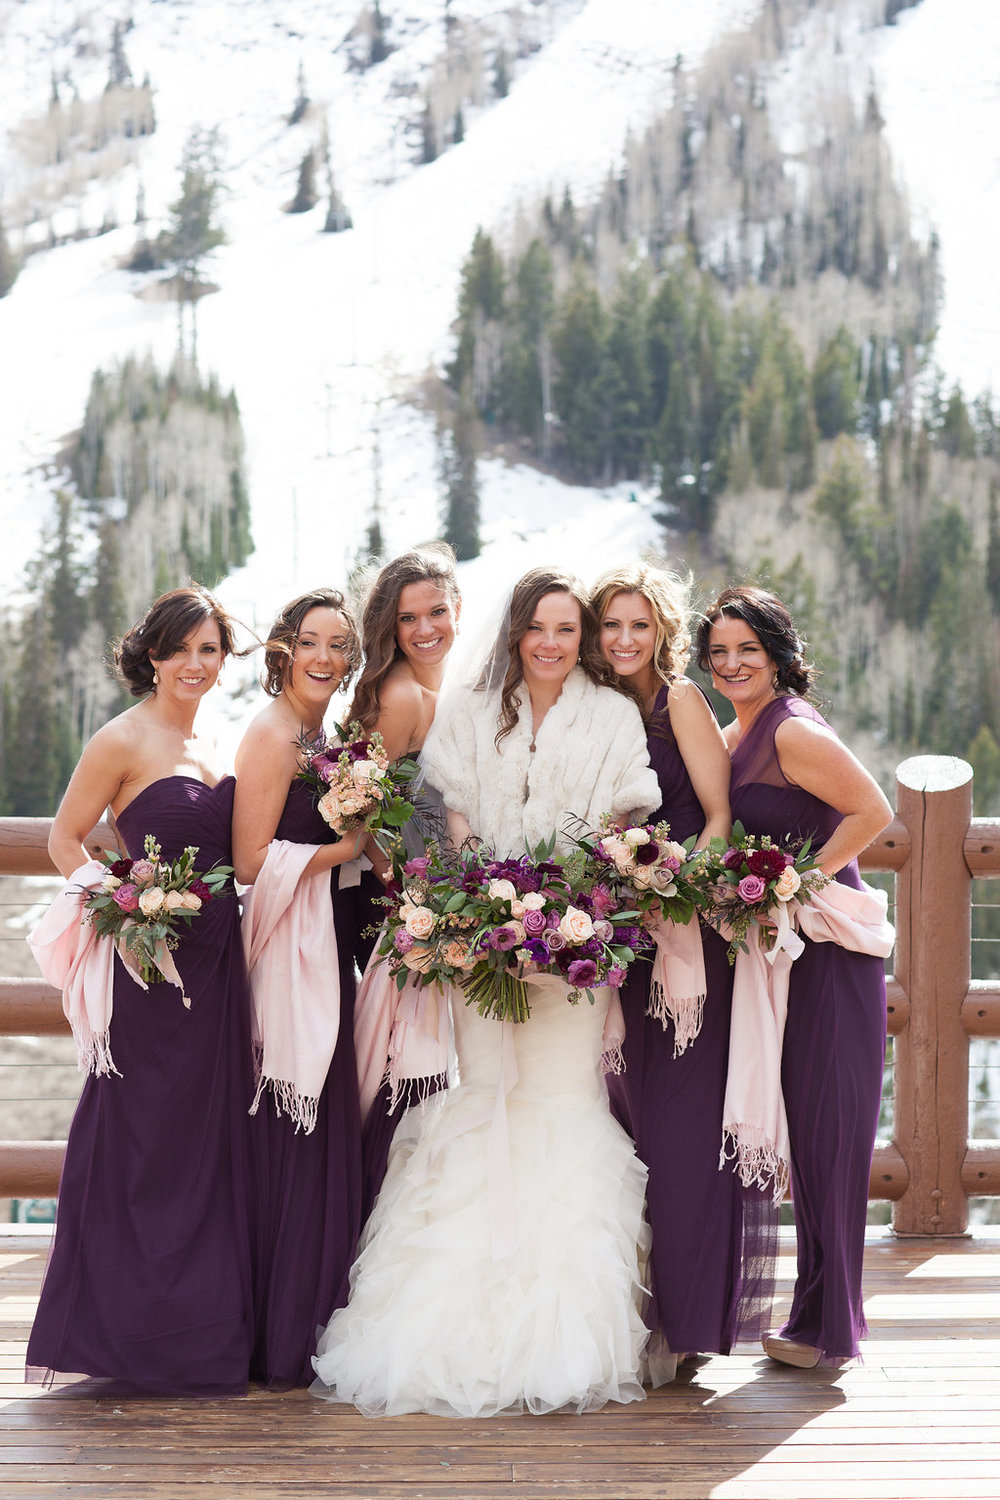 Stein Eriksen Lodge Wedding | Winter Wedding | Plum and Blush | Michelle Leo Events | Utah Wedding Design and Planning | Patricia Lyons Photography